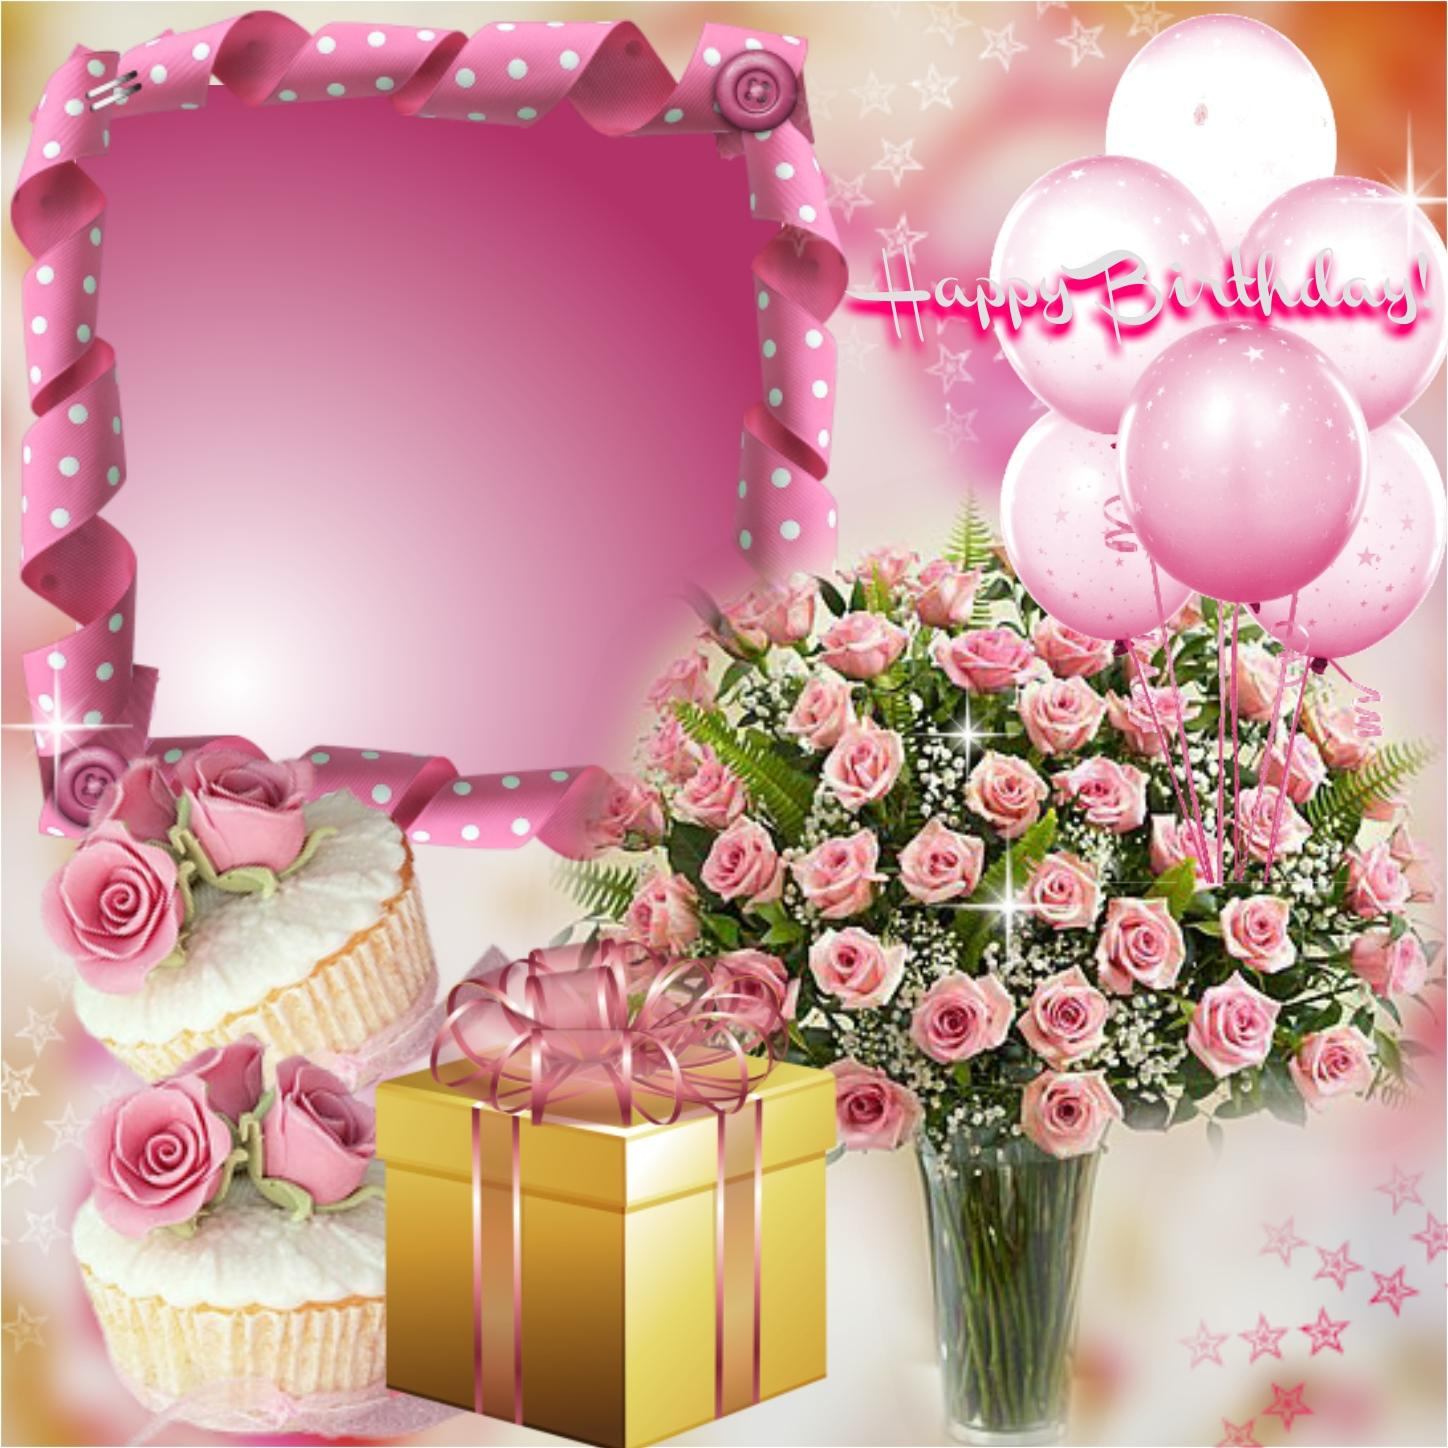 Imikimi Happy Birthday Photo Frames Page 2 Frame